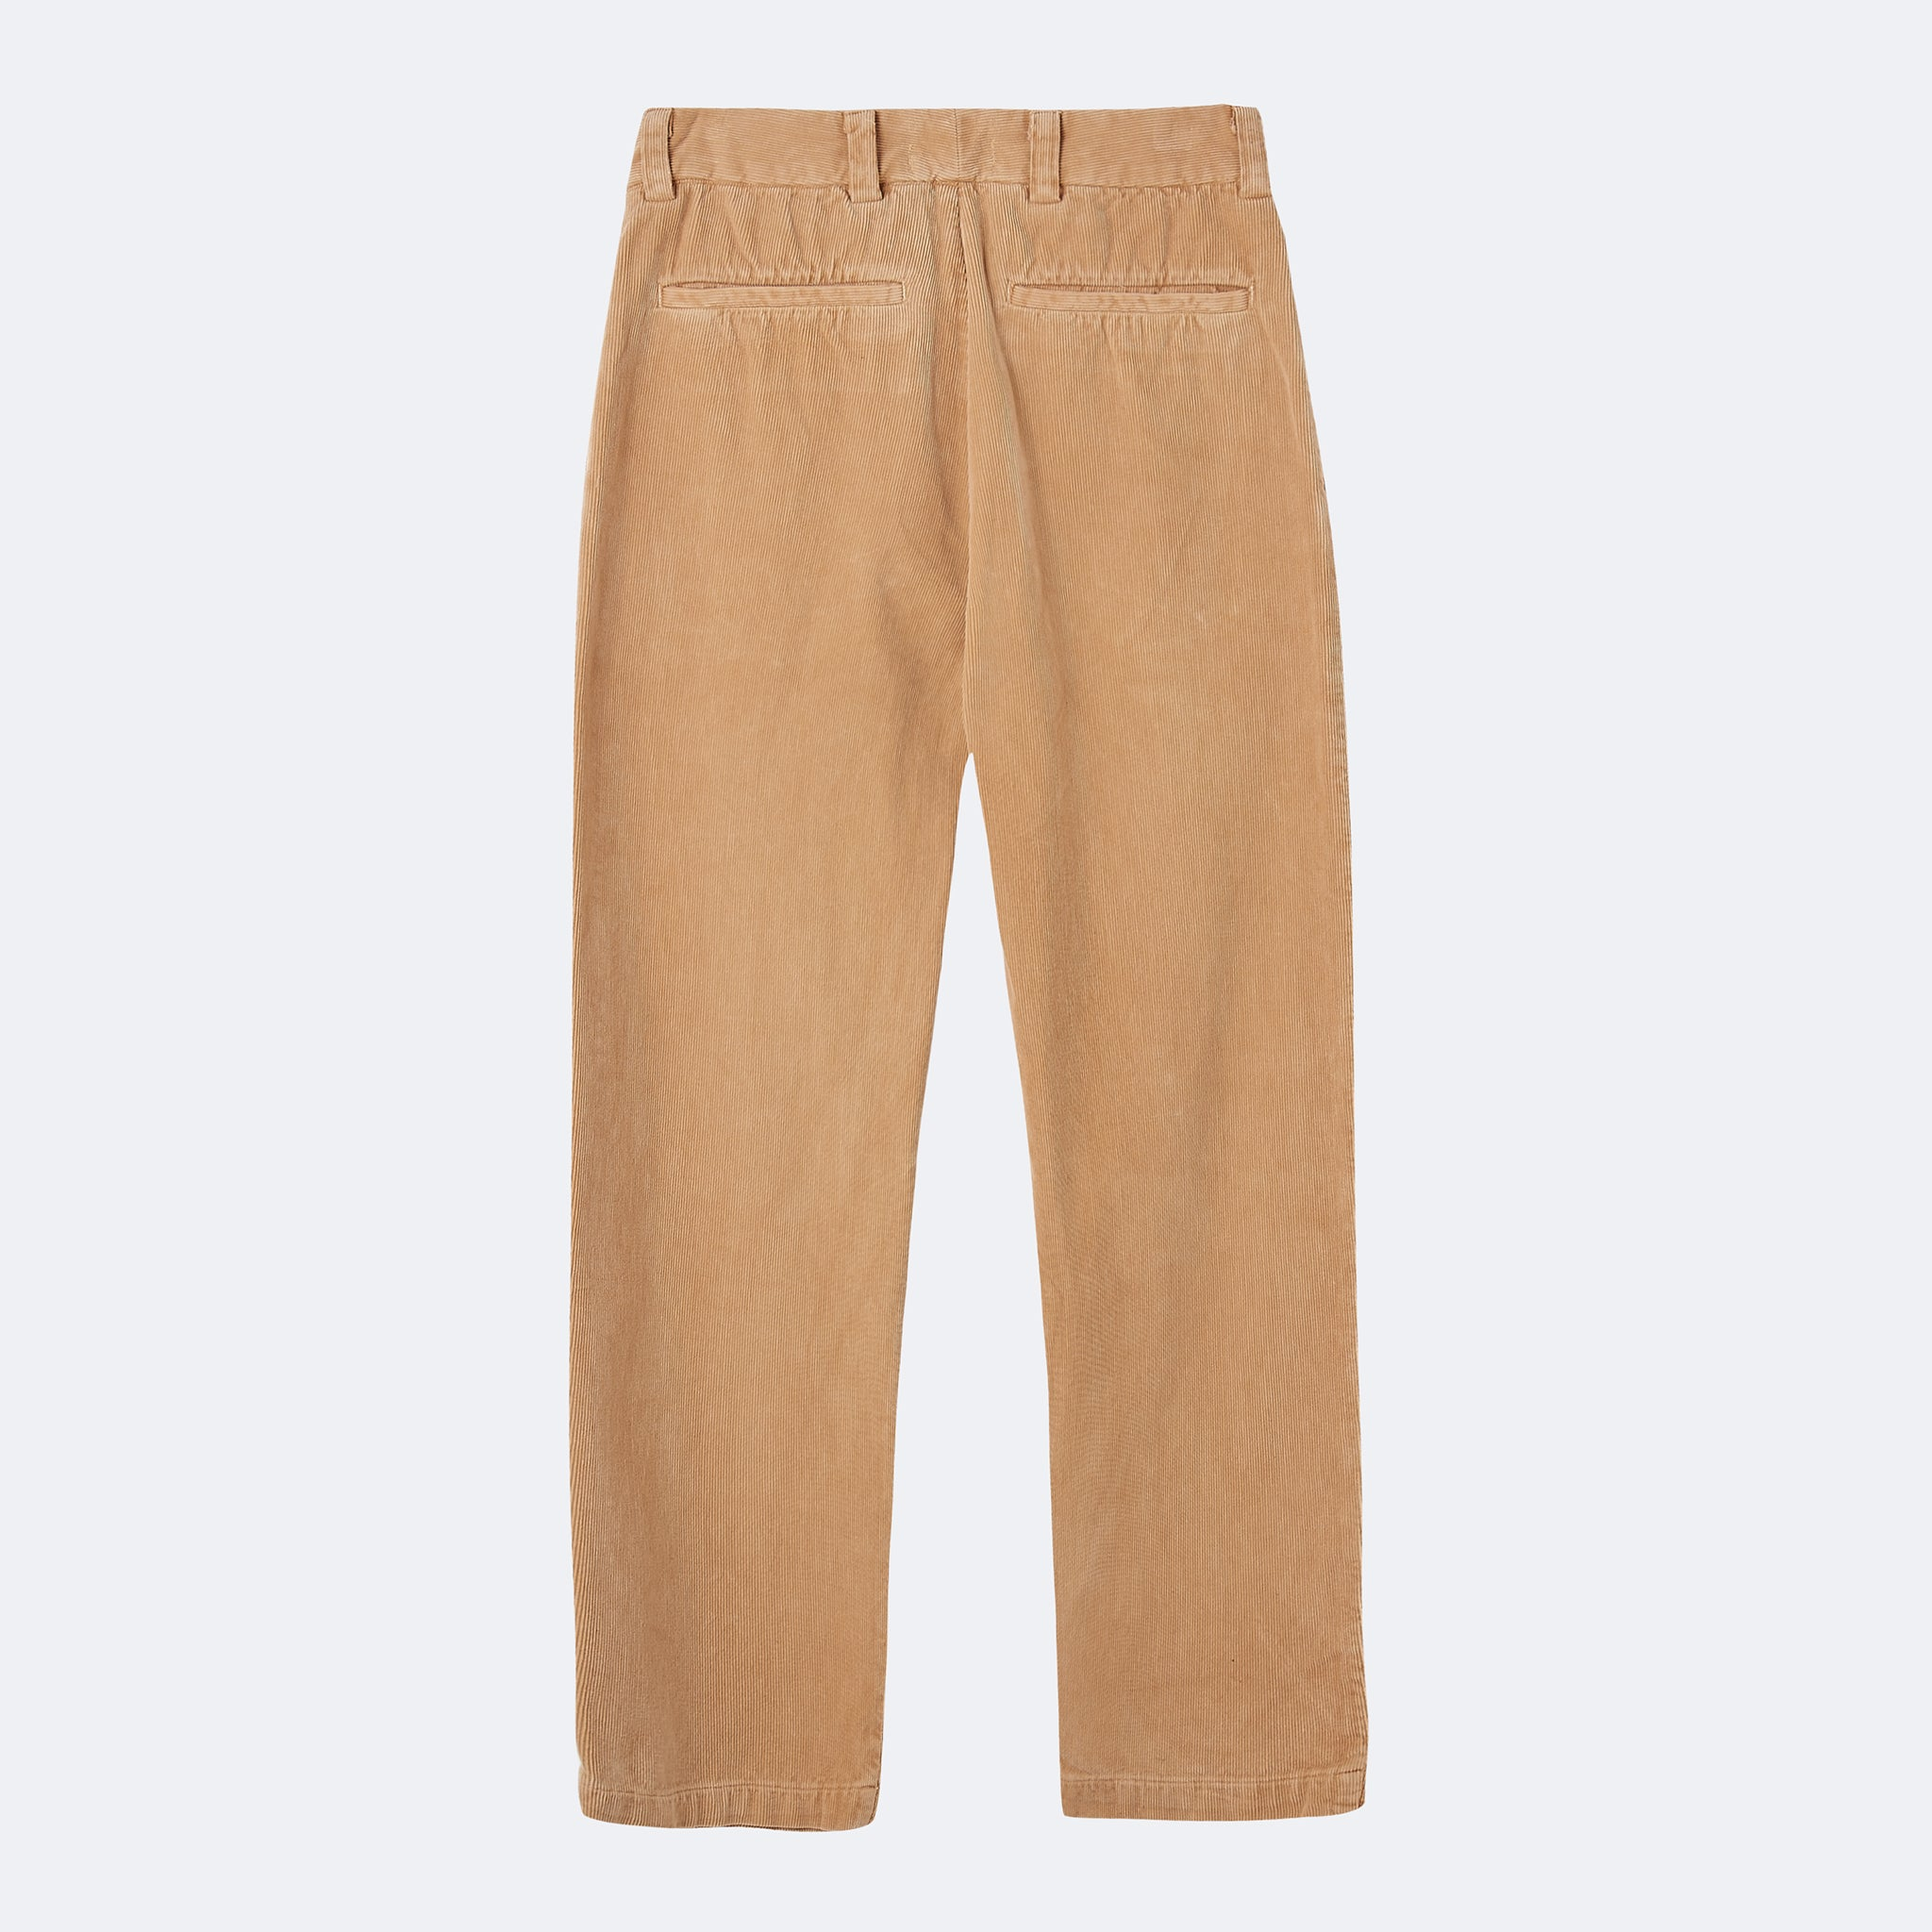 Older Brother Corduroy Pants in Chaga Gold